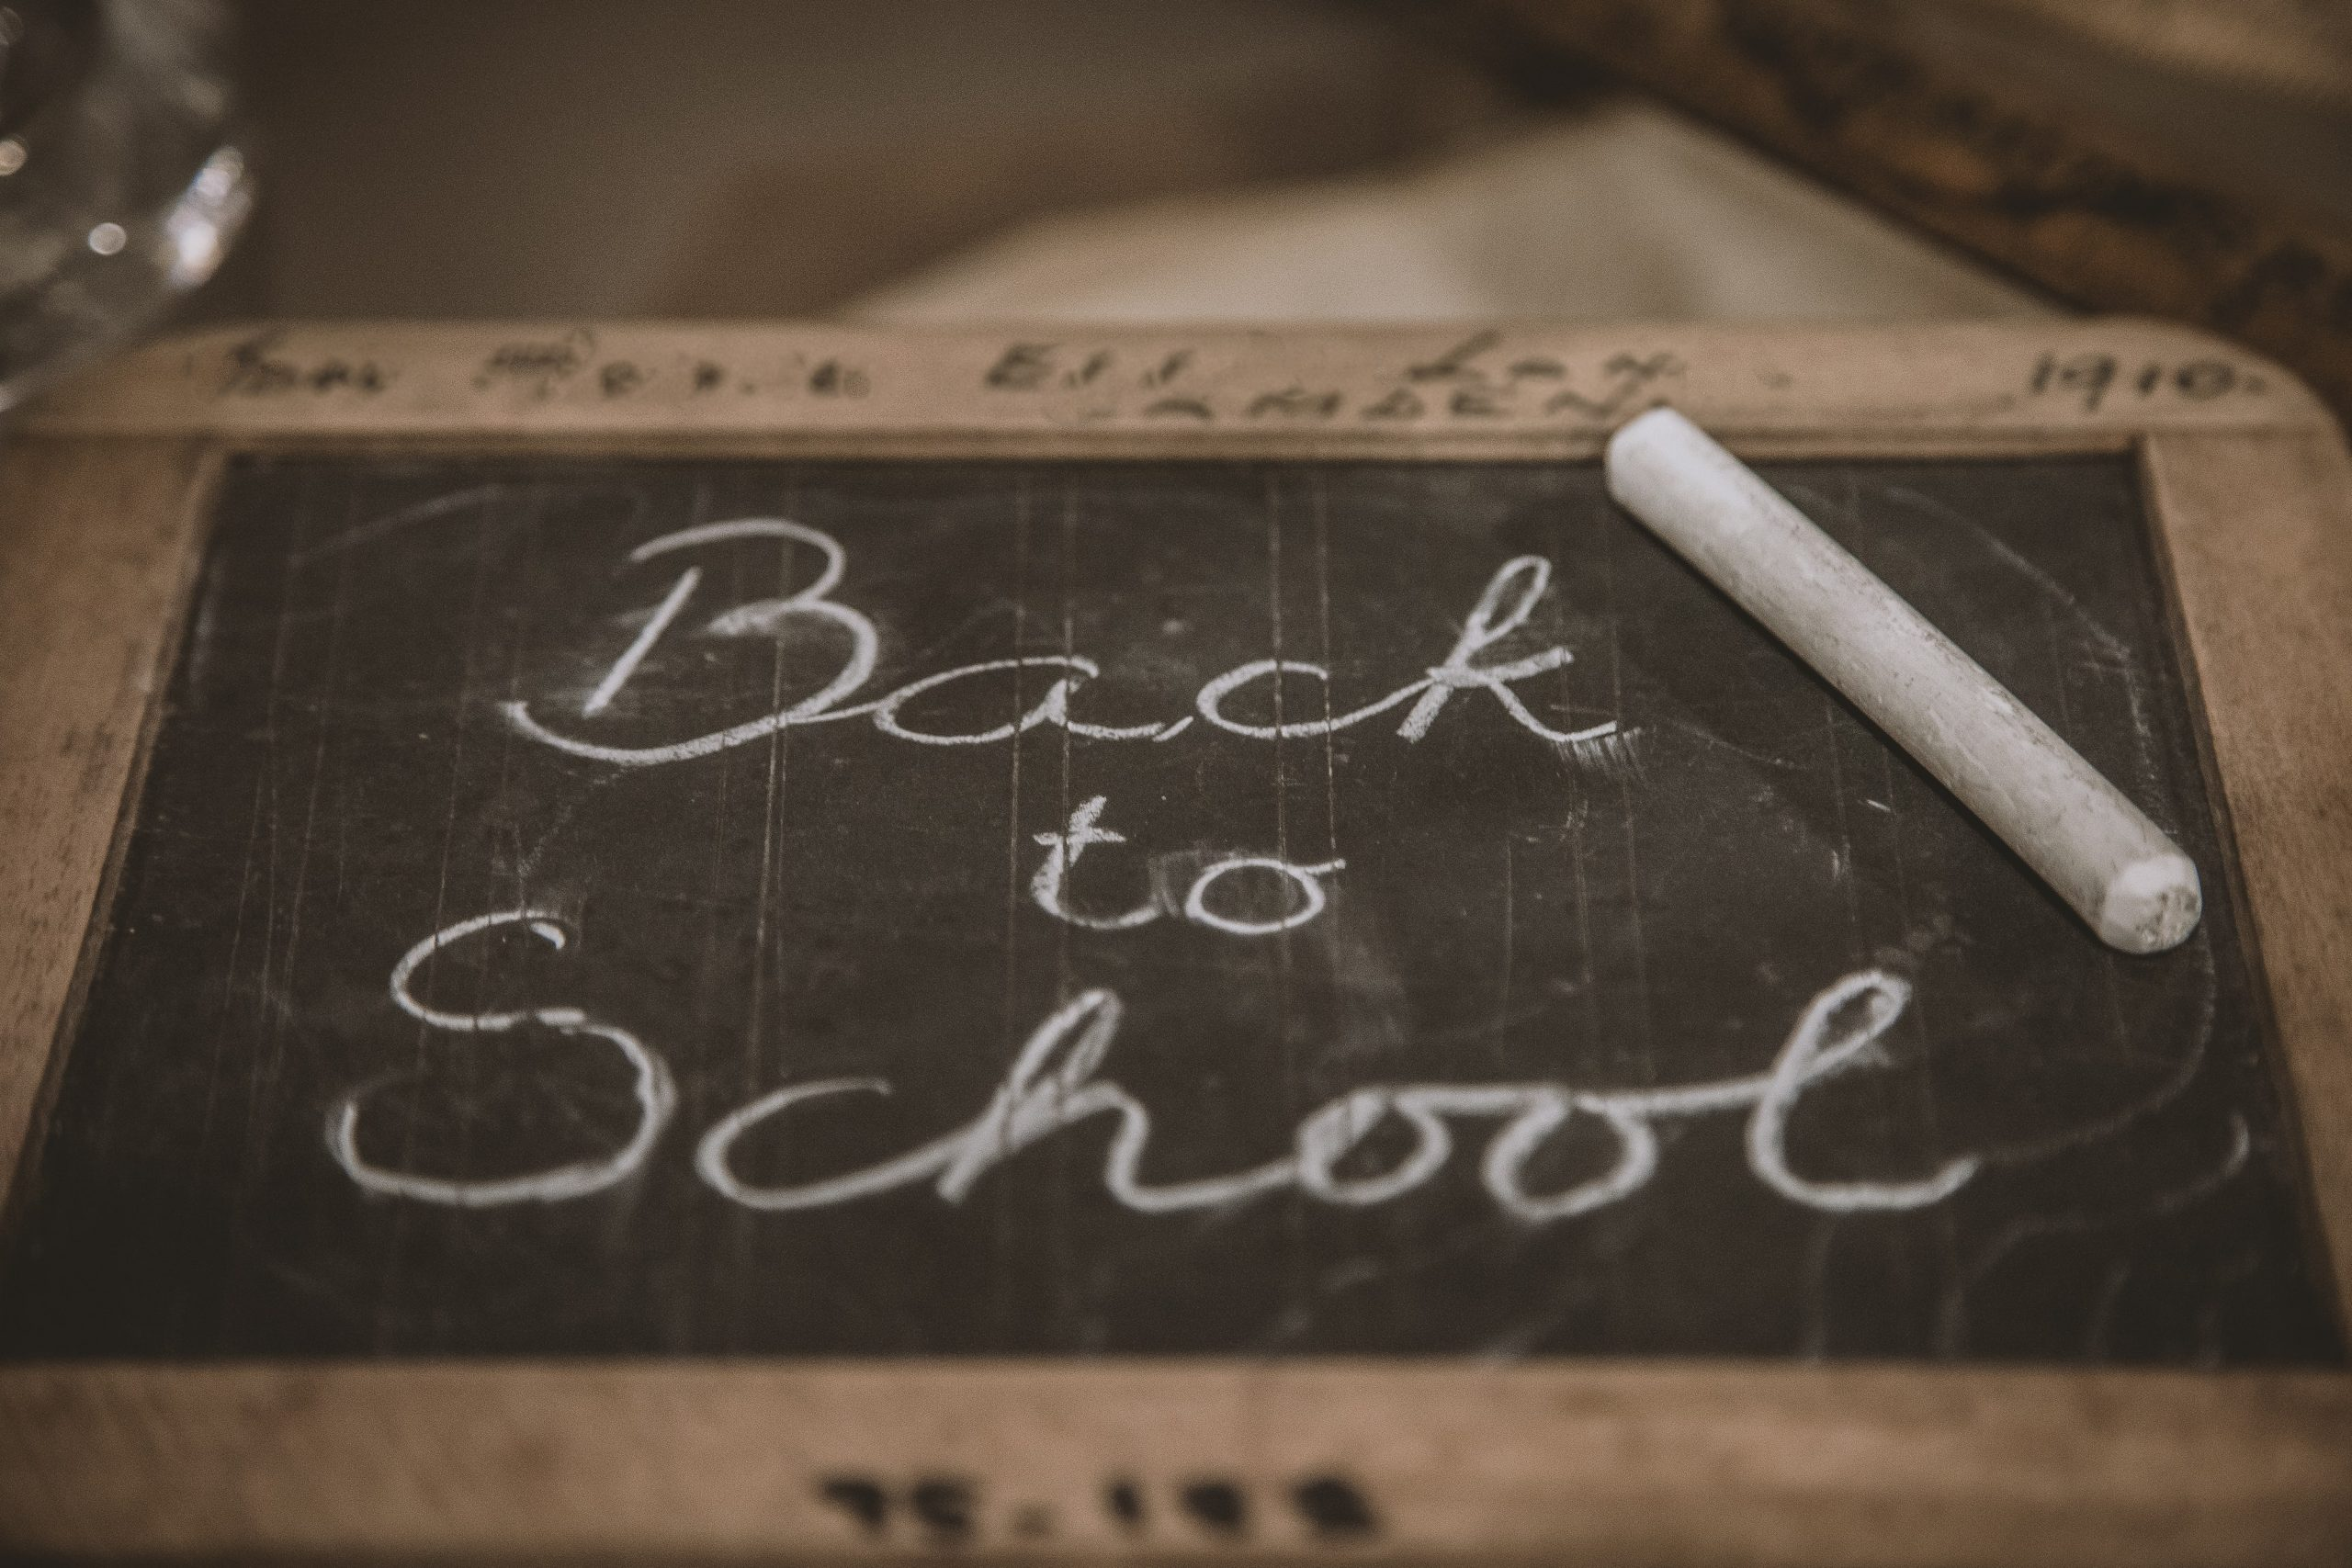 Old-fashioned mini-chalkboard has 'Back to School' written on it in white chalk with the chalk stick resting on top.